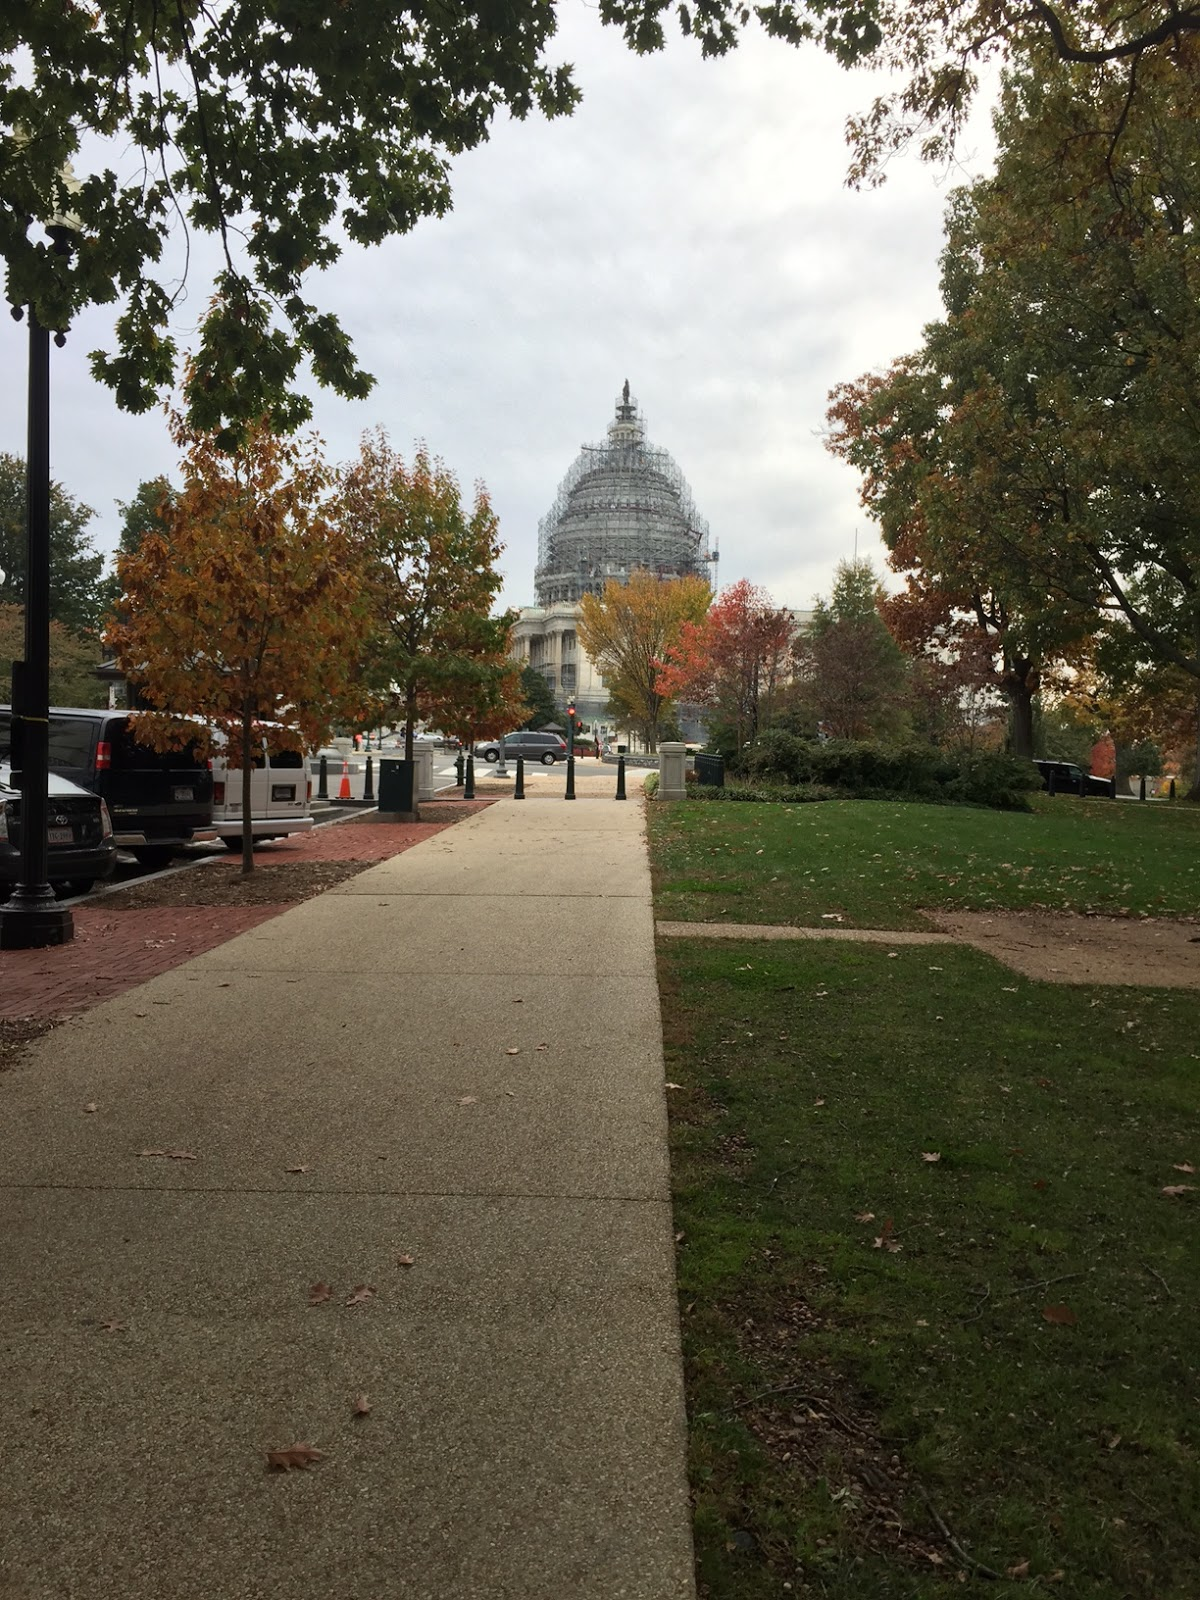 Mississippi River Basin Blog: Capitol Hill This Week - What